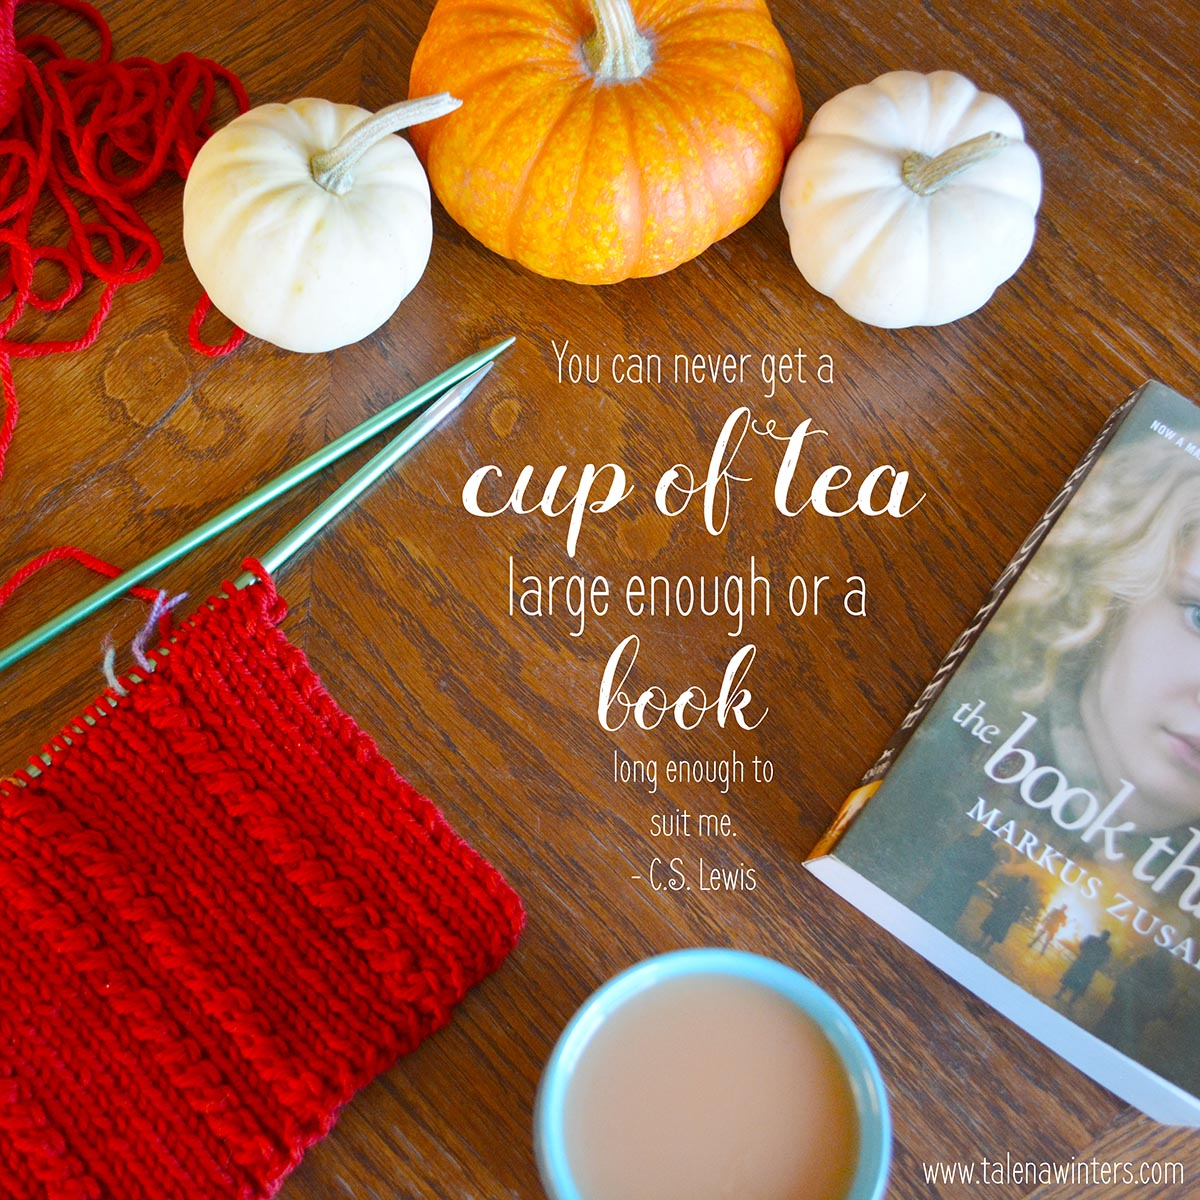 Knitting, reading, tea, things with pumpkin (pie spice)... only a few of life's simple pleasures that I love.